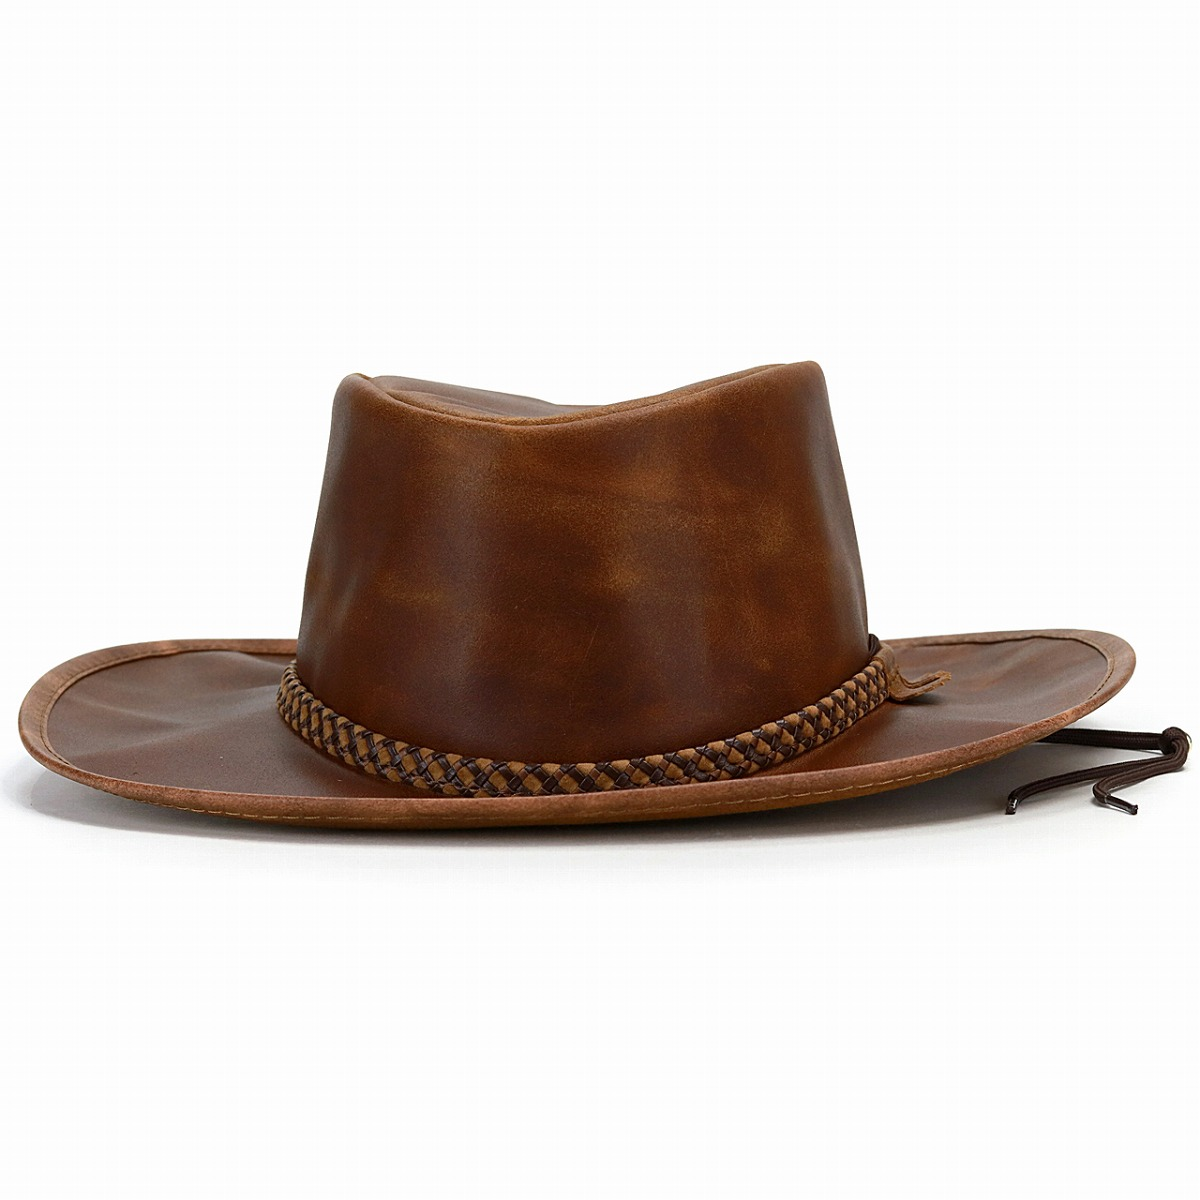 ... Product made in Head n Home cowboy hat leather men hat genuine leather  United States ... 876dfa36341